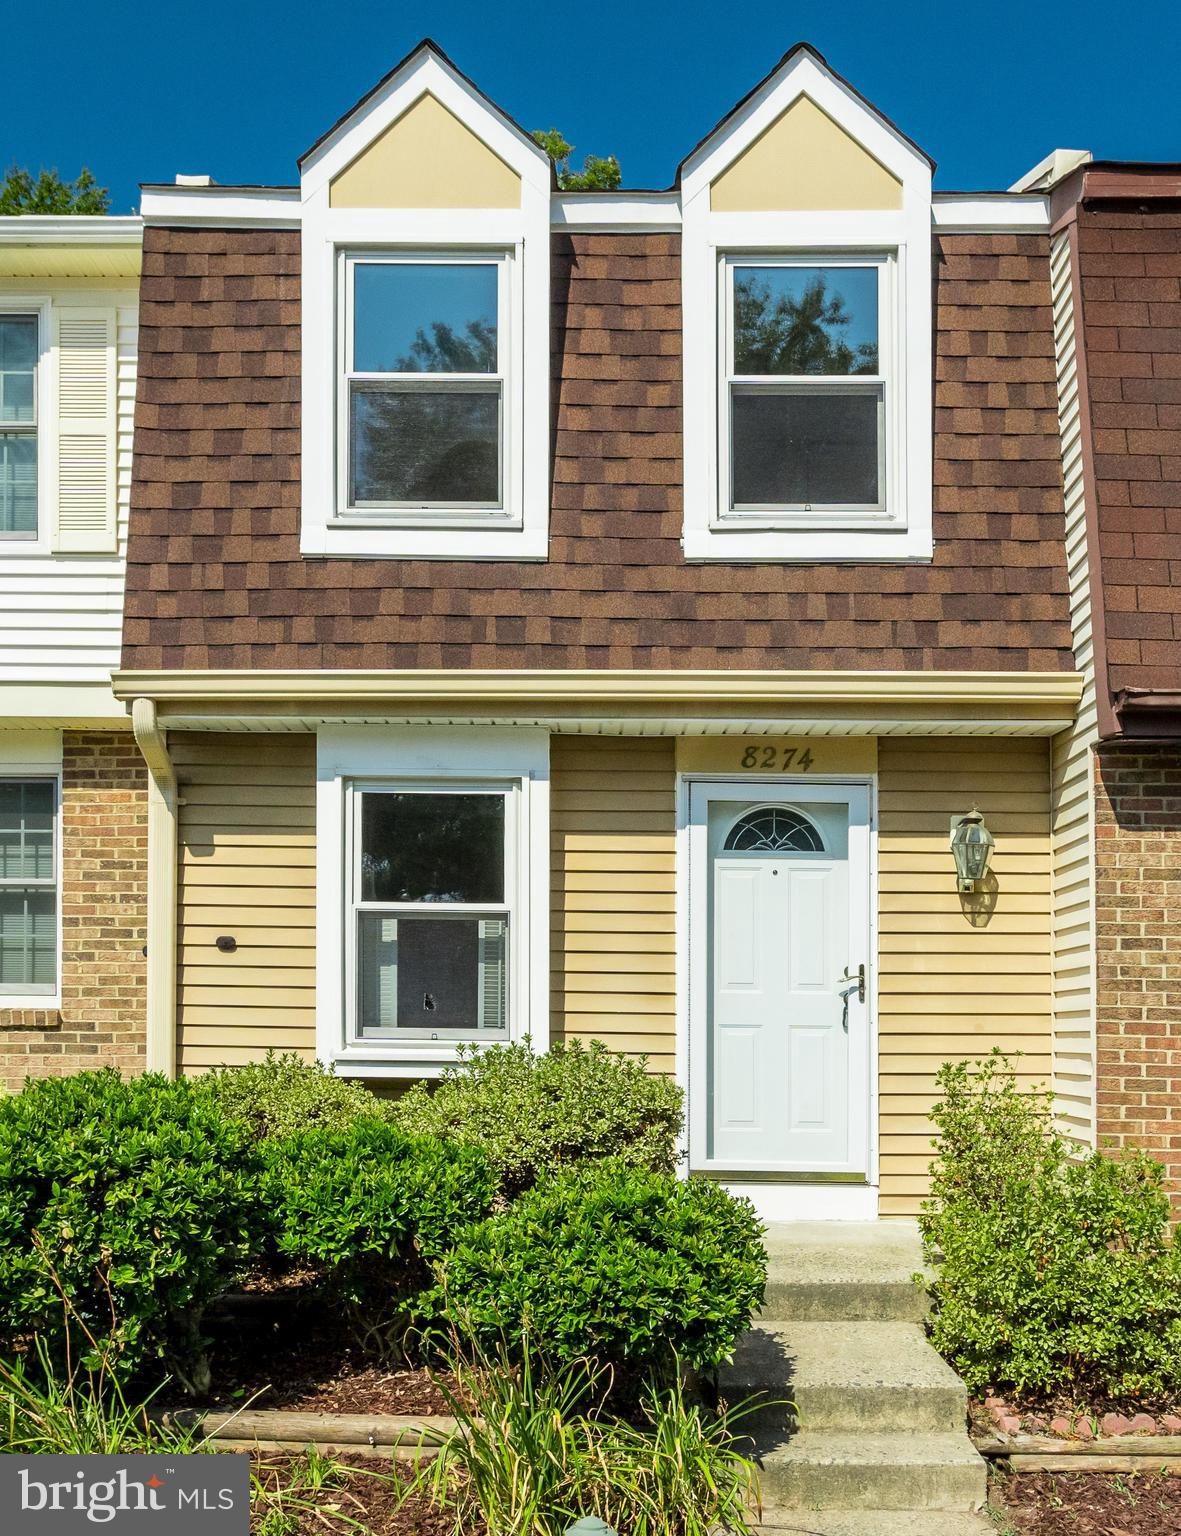 Fabulous 3 Level Townhome Backing to Trees and Access to Common Area. Offers a Full Kitchen with Updated Cabinets, Plenty of Counter Space, a Pantry, and Pass-thru to Dining Room. Living Room has Wood Burning Fireplace. Brand New Carpeting Throughout. Freshly Painted. Master Bedroom Features Large Closet, Built-in Vanity and Private Entrance to Dual Entry Full Bath. Second Bedroom Features Built-in Bookcase.  Fully Finished Lower Level Family Room had Door to Fenced-in Back Yard with Deck, Storage Shed, and Gate to Common Area. Plenty of Windows to Let in Lots of Light.  Brand New Roof, HVAC, and Washer ~ All the Expensive Stuff! Close to Springfield Metro, Fairfax County Pkwy, I-95, Metrobus Stops. Lots of Community Amenities: Pool, Tennis Courts, Tot Lots, Jogging Paths and More! Excellent Fairfax County Schools in South County Pyramid!